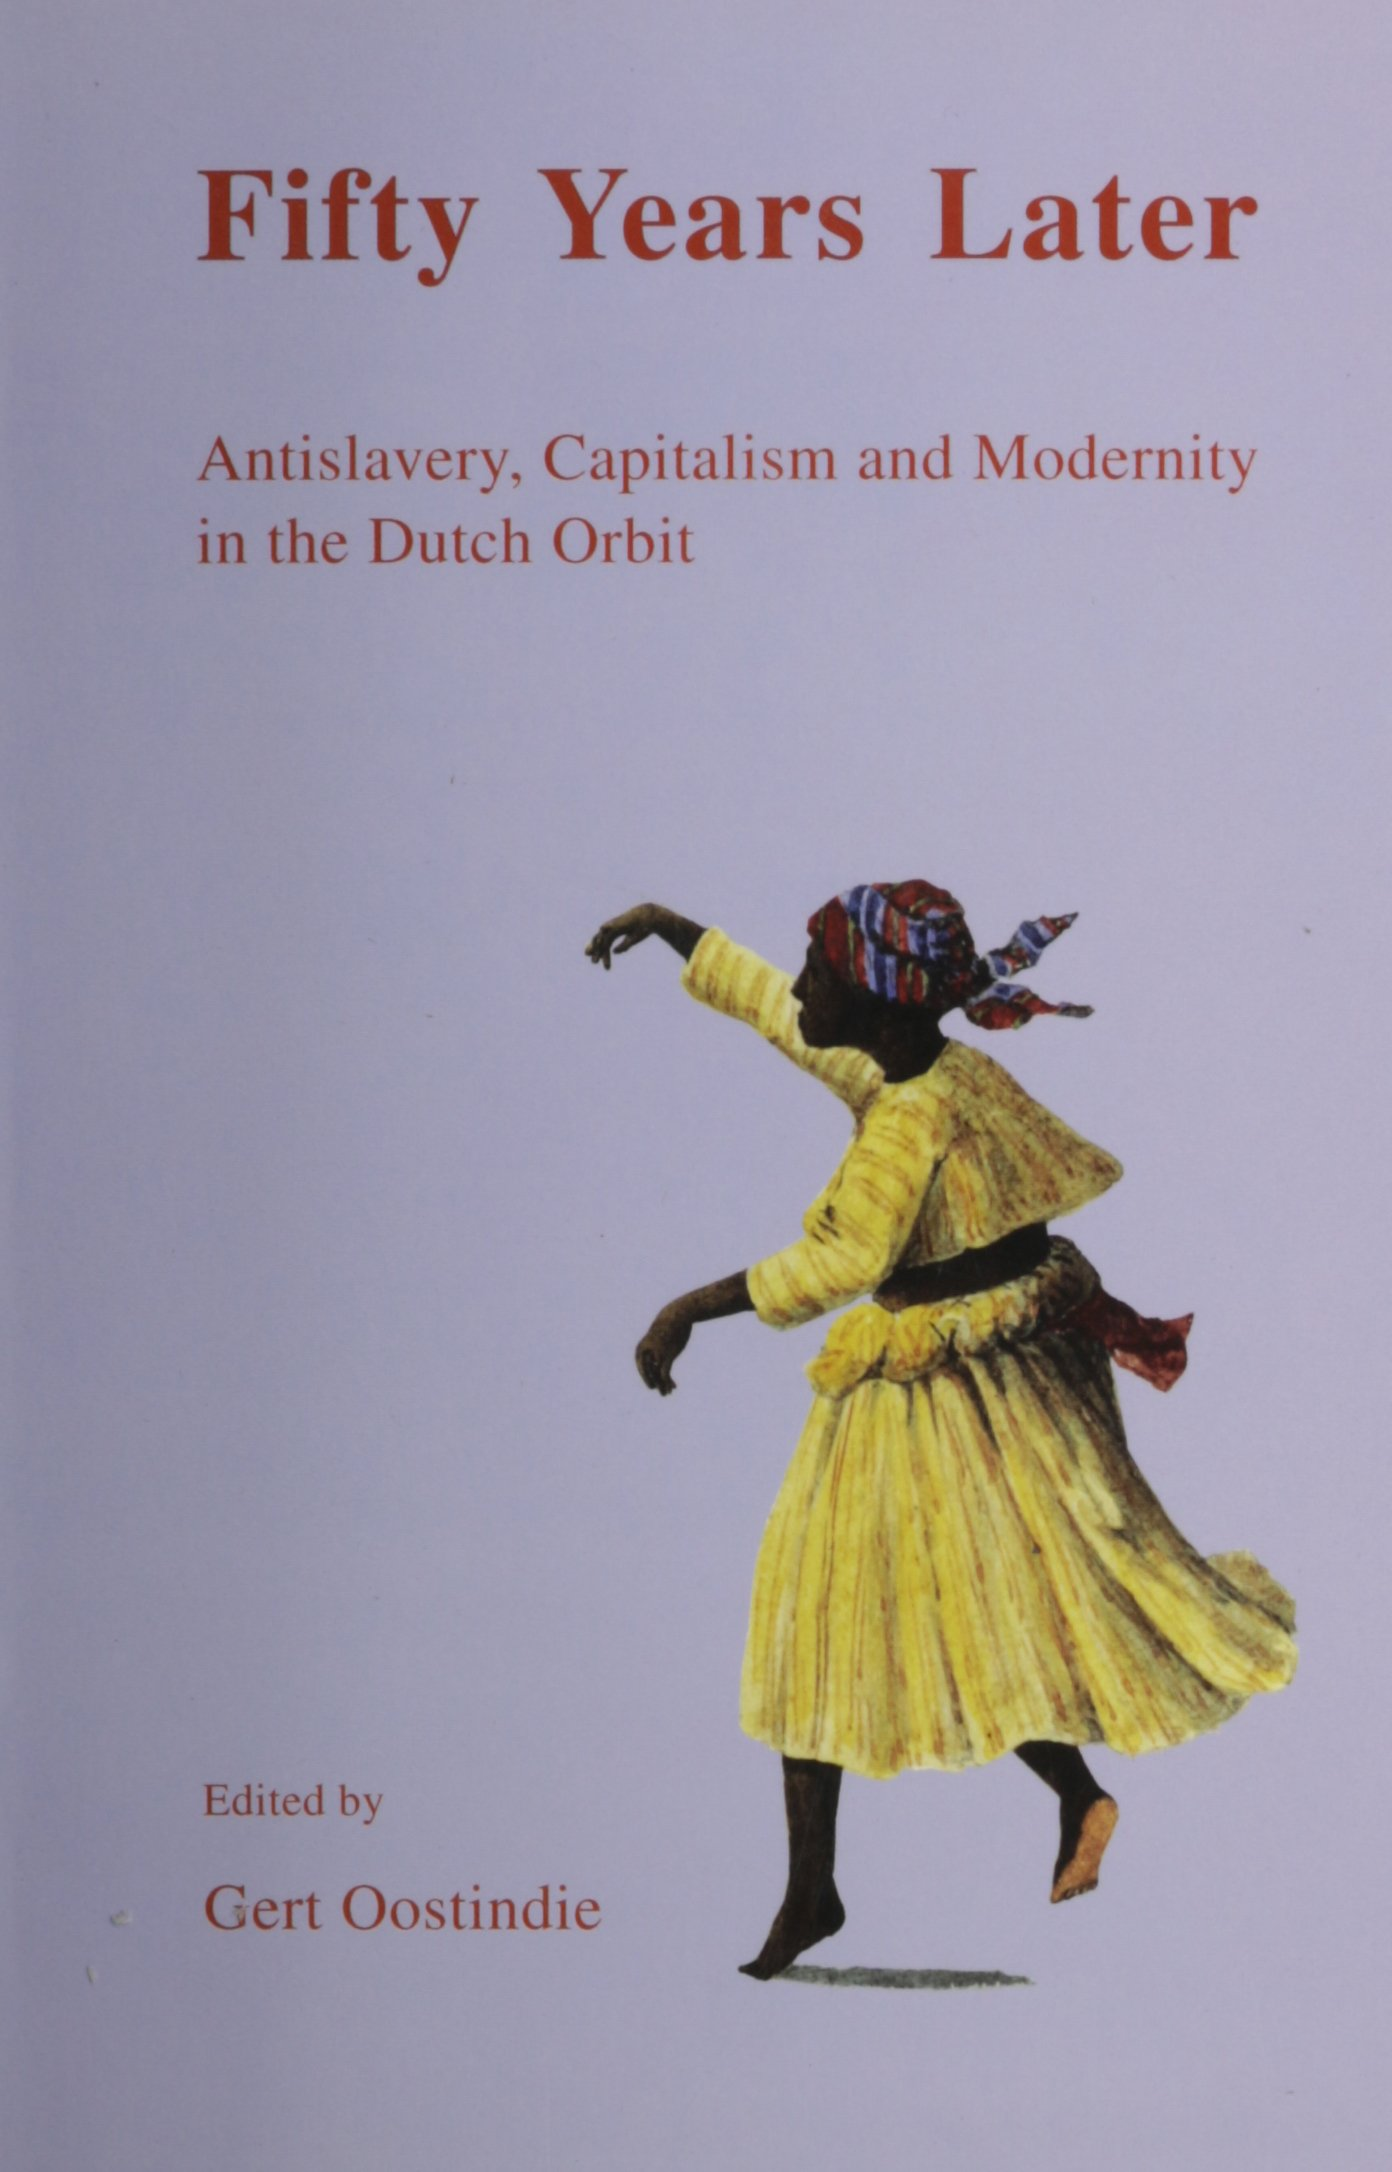 Fifty Years Later: Antislavery, Capitalism and Modernity in the Dutch Orbit